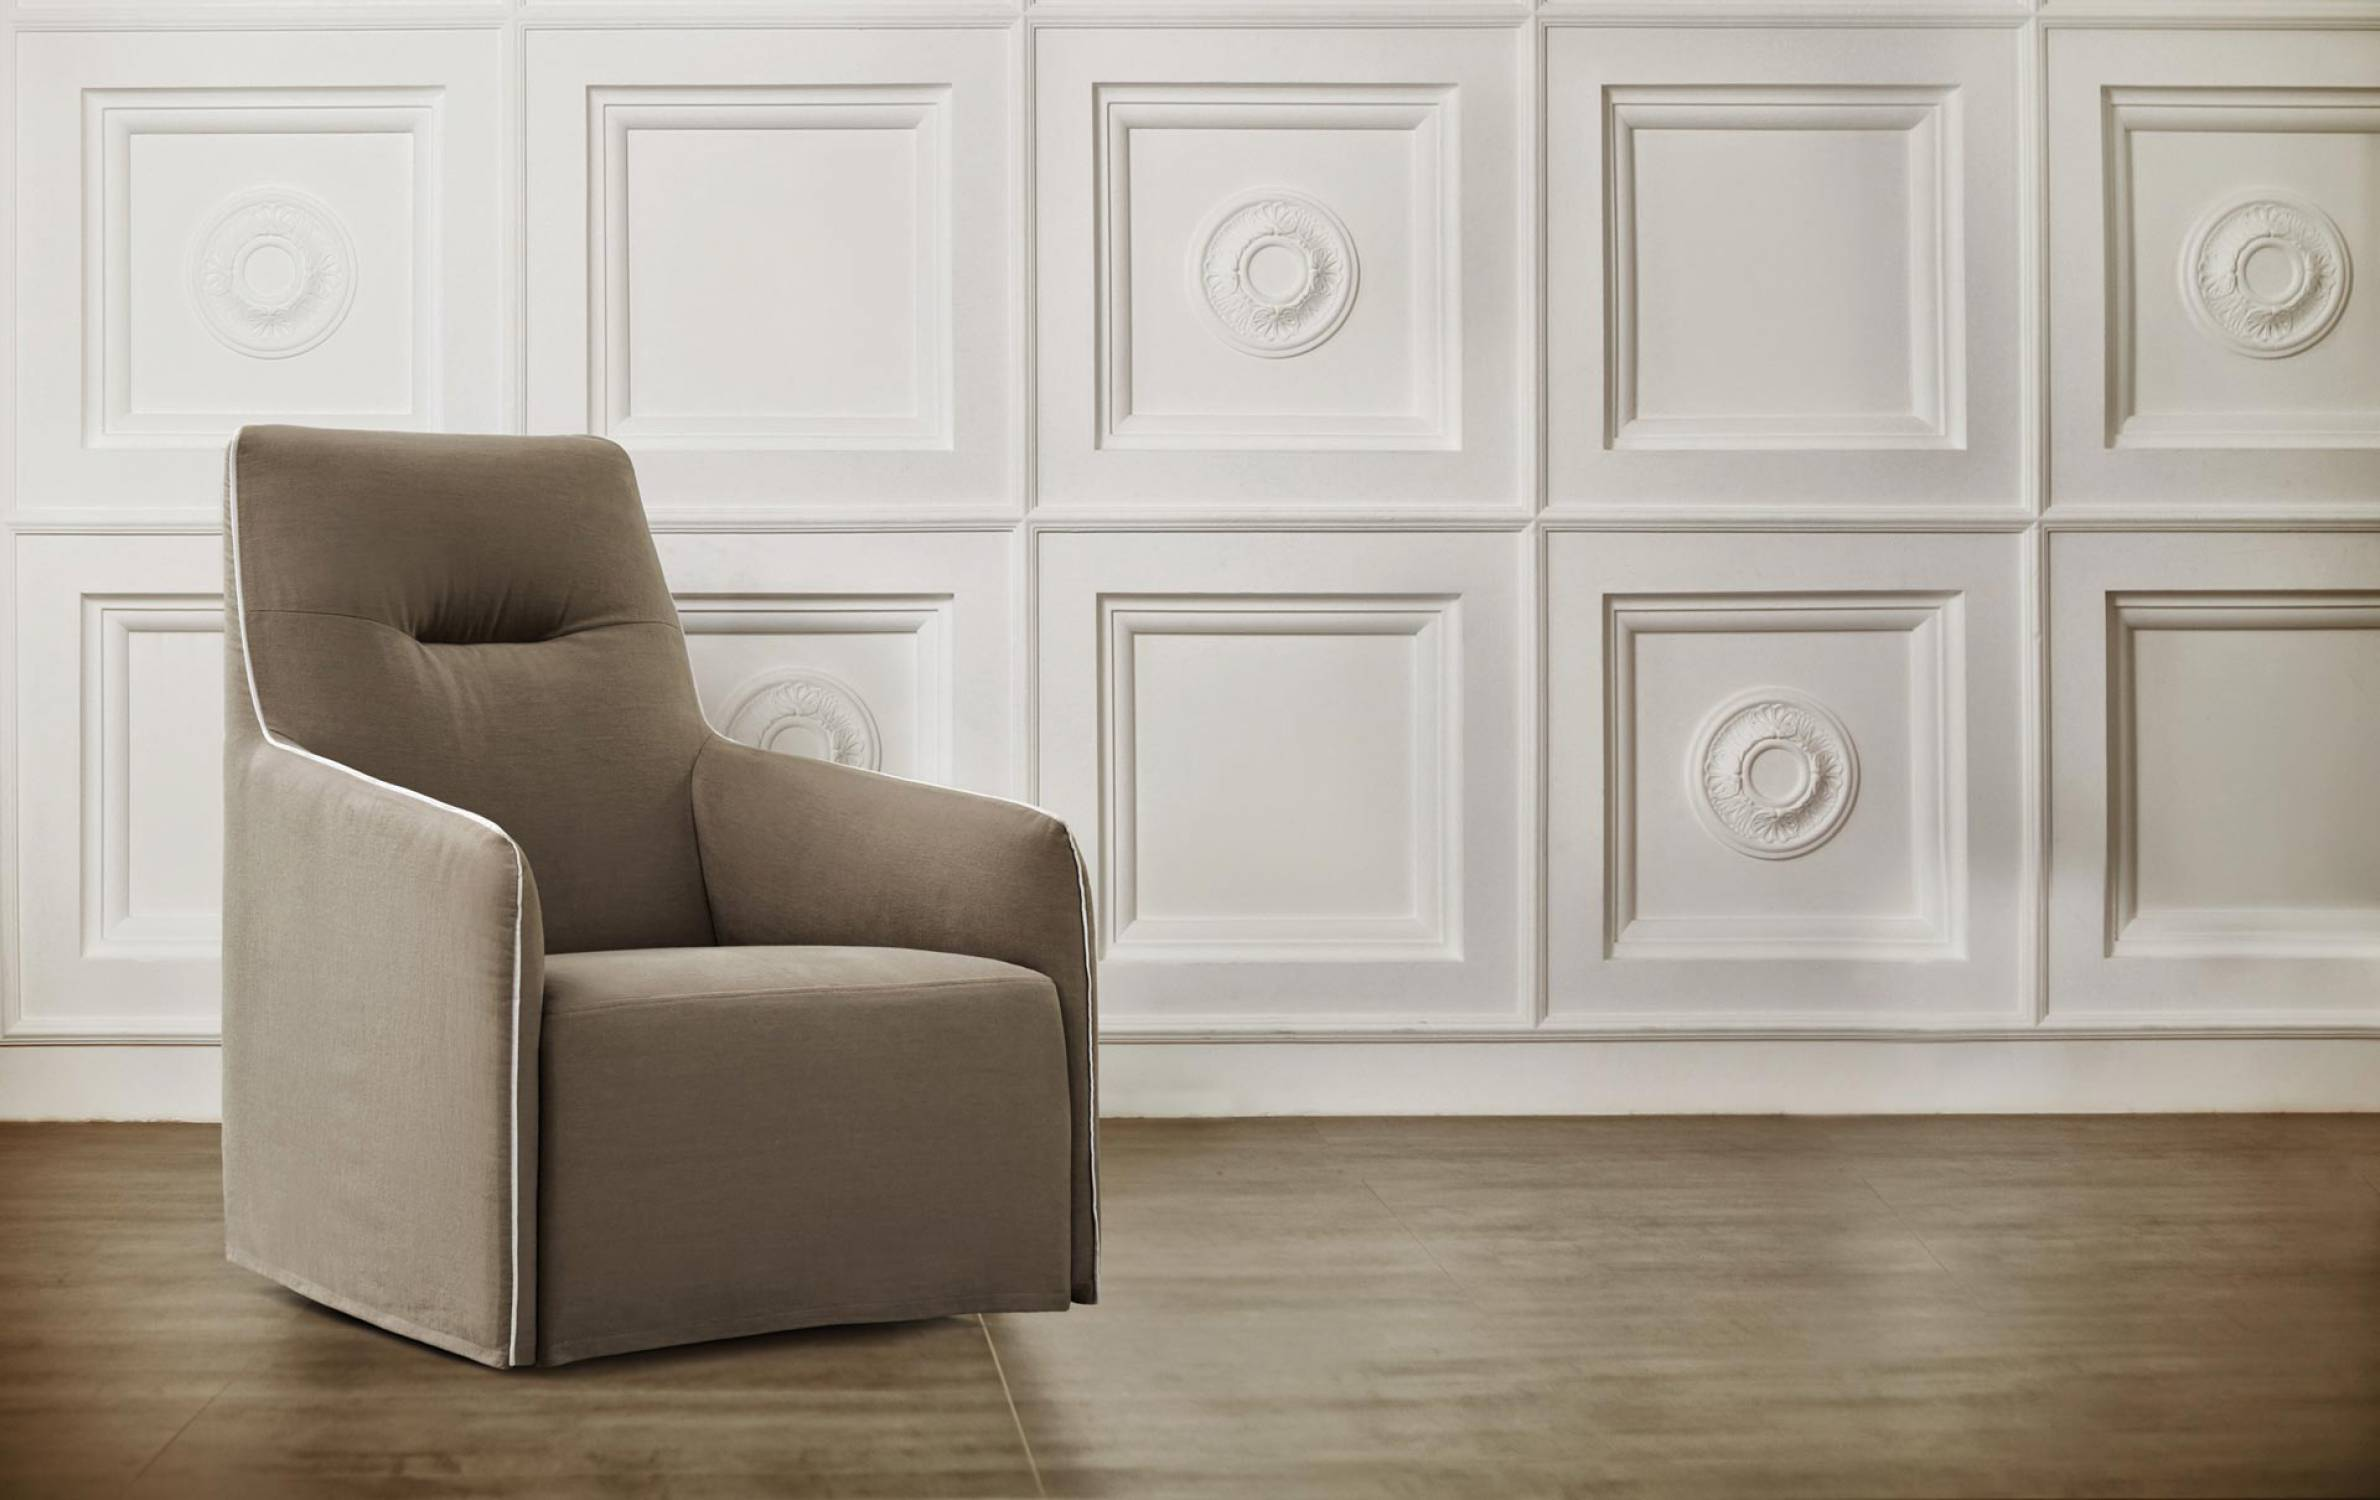 Cool armchair papadatos for Cool armchairs